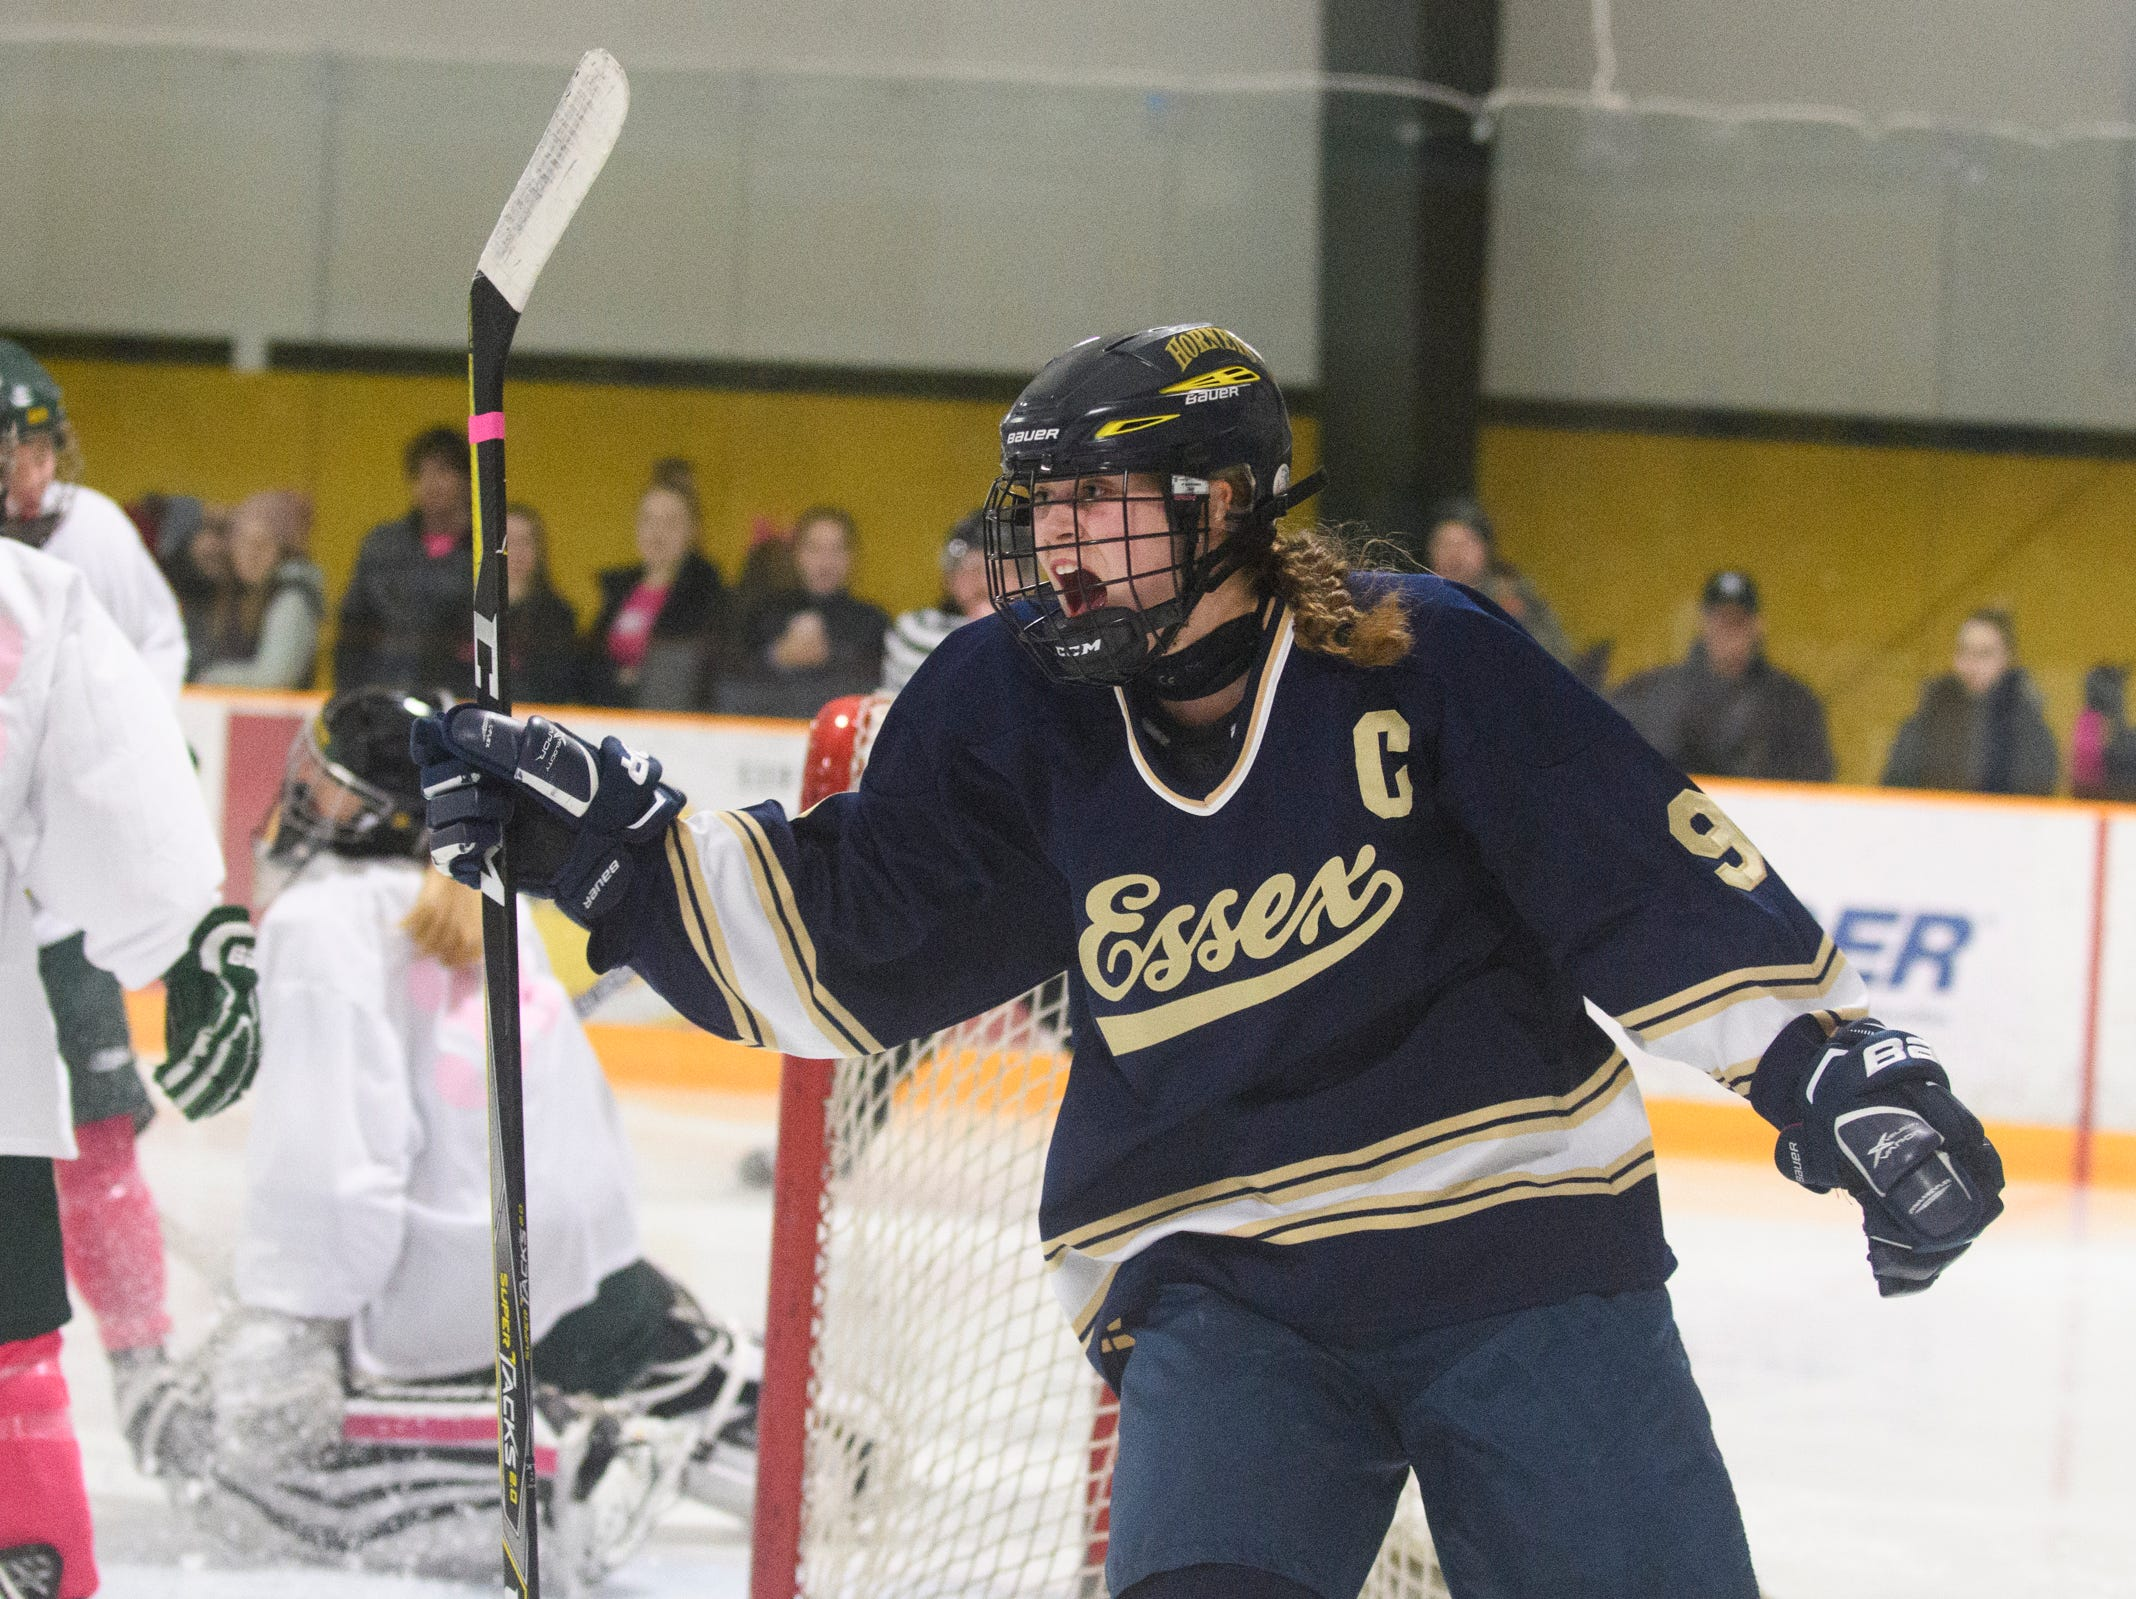 Essex's Olivia Miller-Johnson (9) celebrates a goal during the girls hockey game between the Essex Hornets and the BFA-St. Albans Comets at Collins Perley Sports Complex on Monday night February 18, 2019 in St. Albans, Vermont.